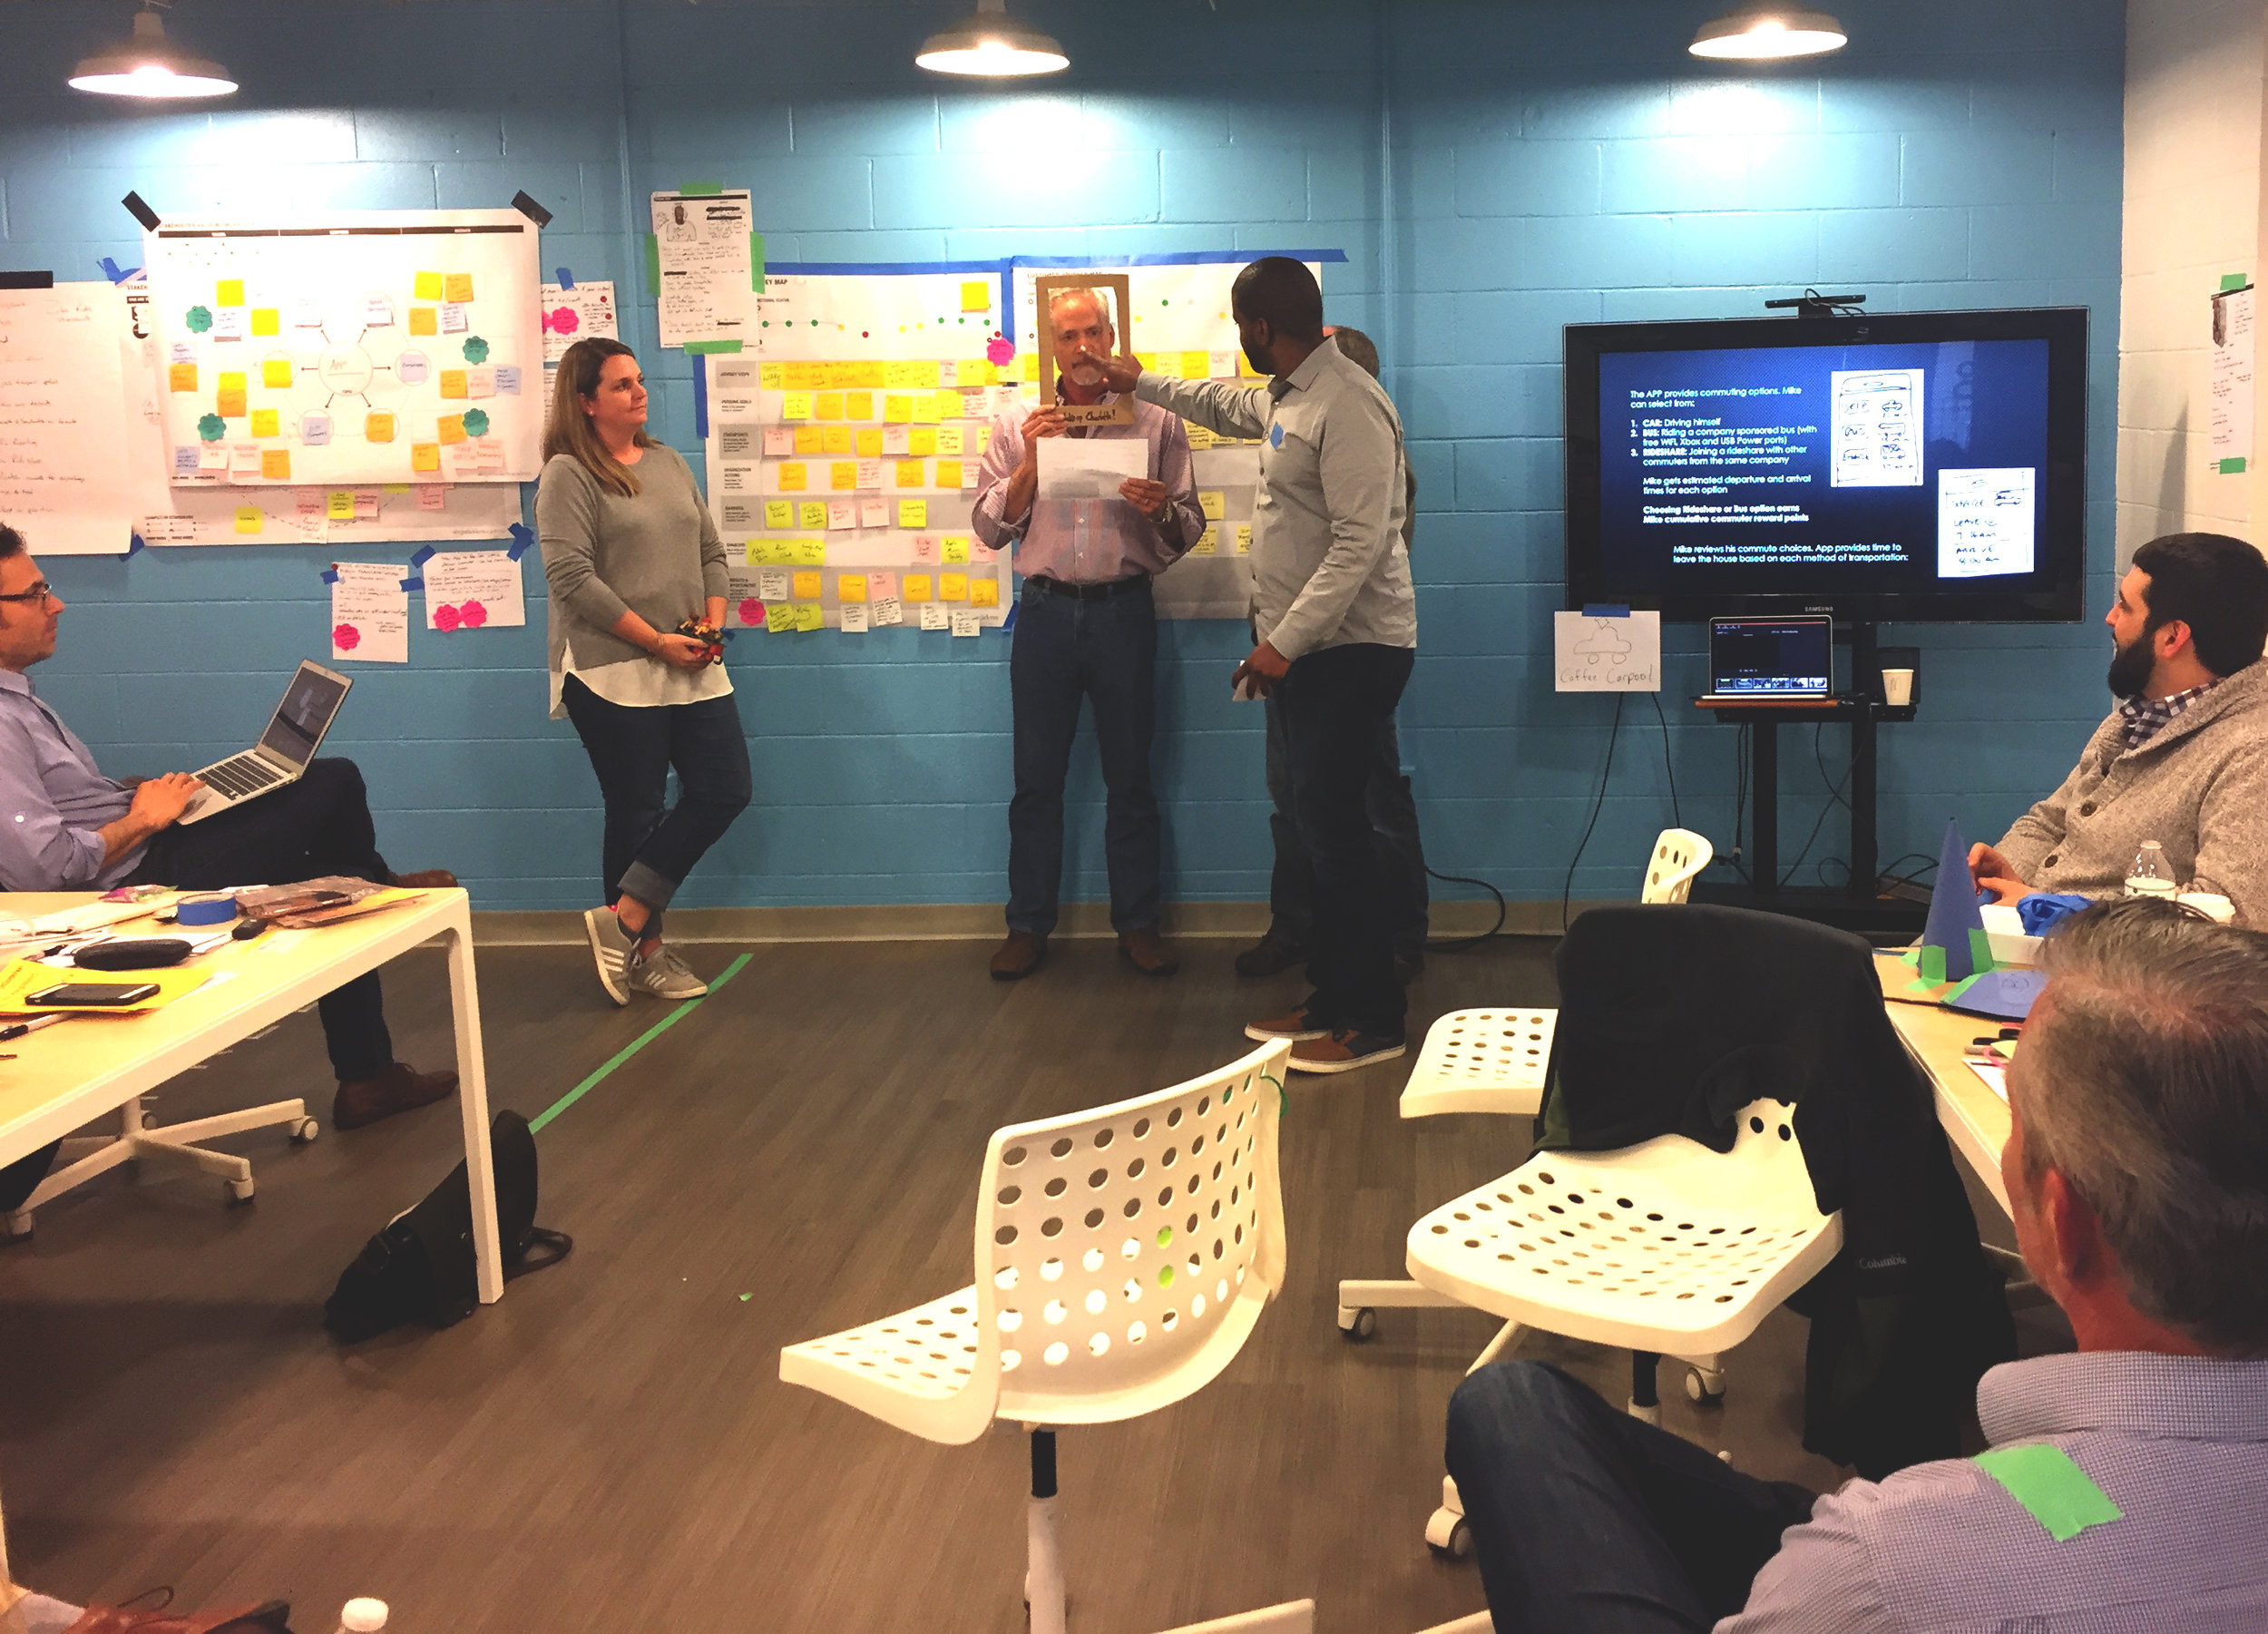 A team acts out their idea (complete with human animation) during a 2 day service design fundamentals training.